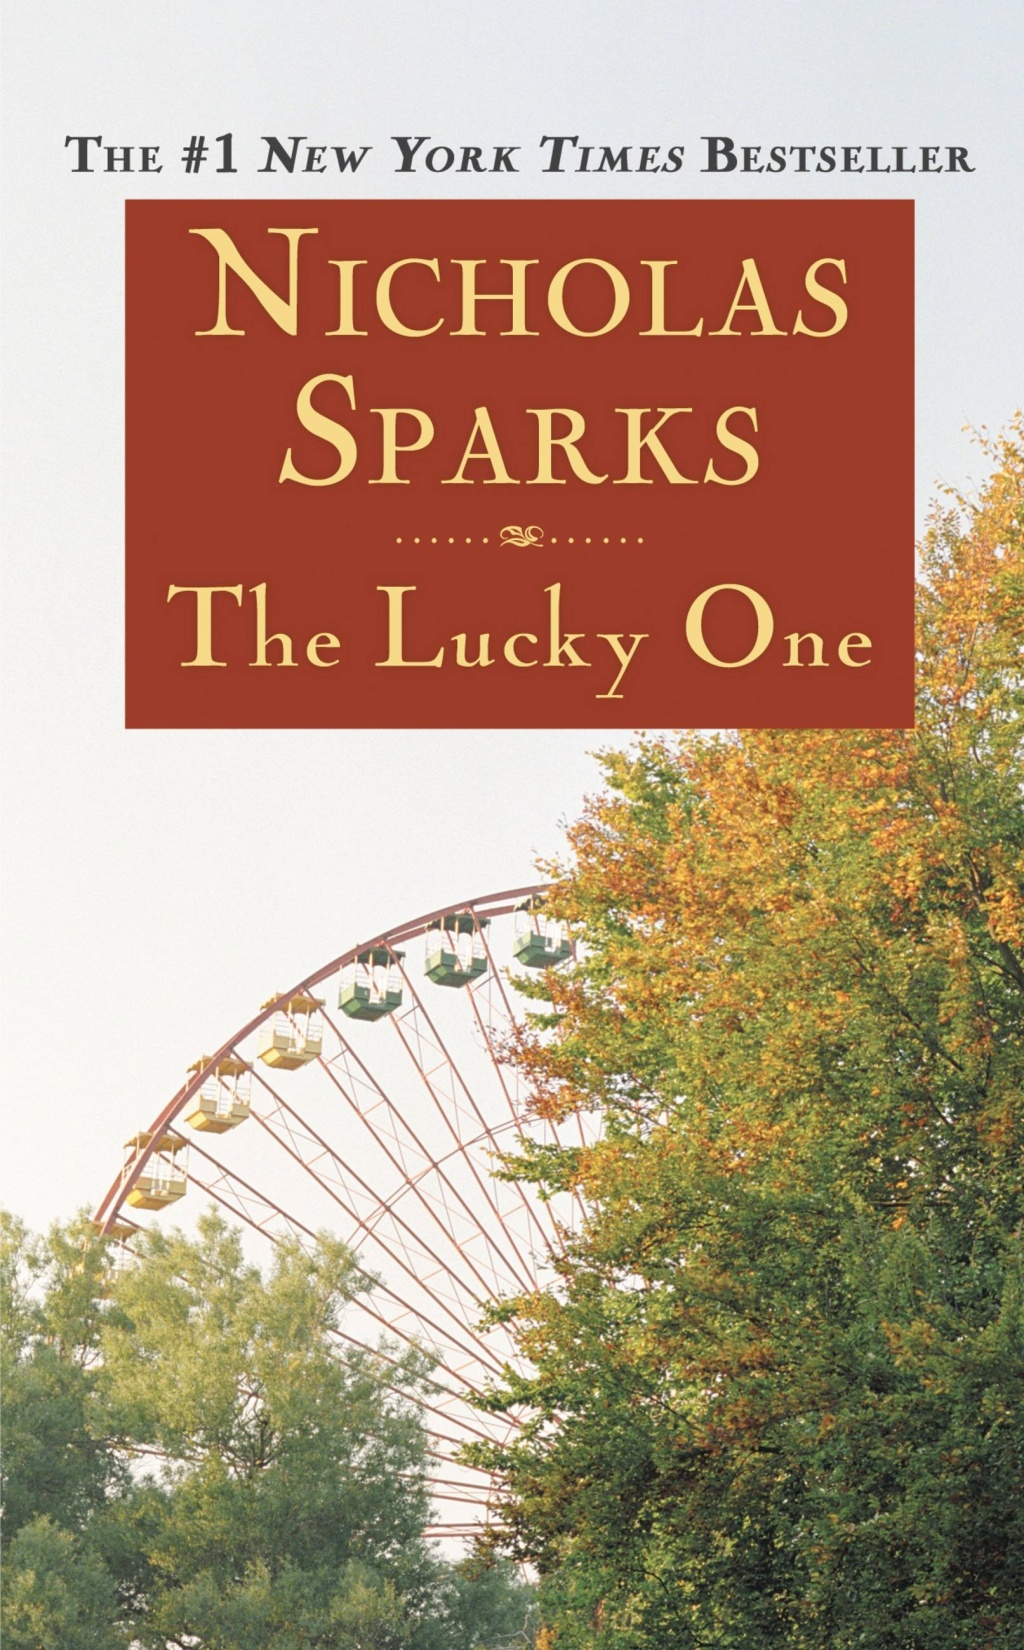 an evaluation using feminist perspective in the lucky one a novel by nicholas sparks